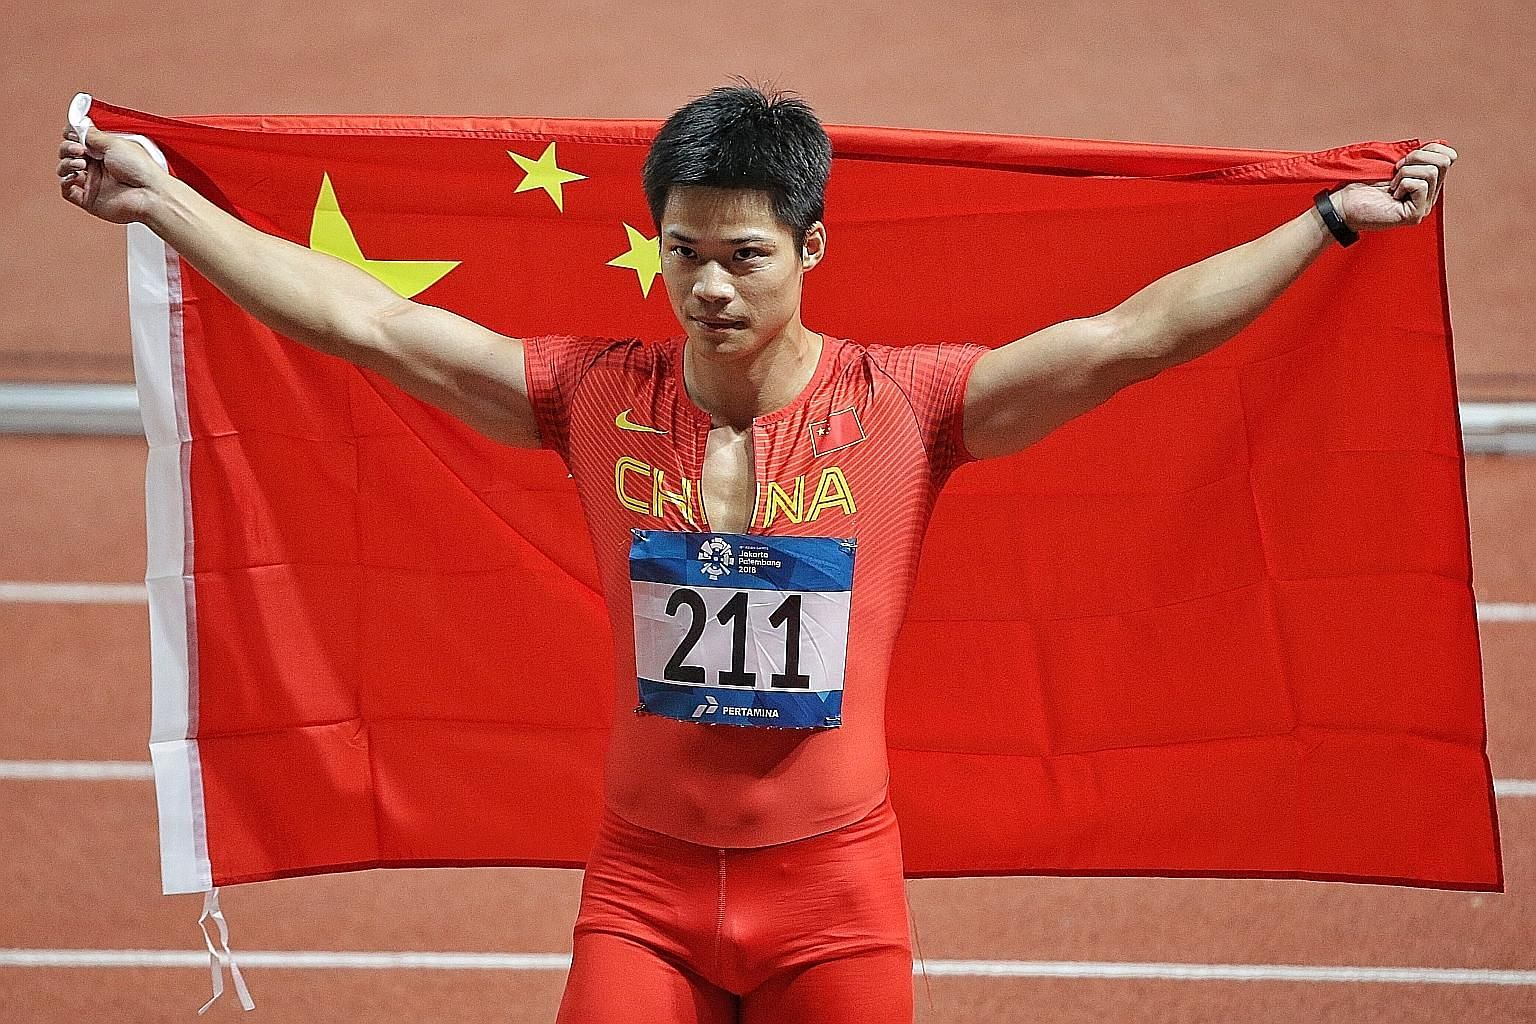 China's Su Bingtian carrying the Chinese flag after winning the men's 100m final in a Games record of 9.92sec, beating the old mark by 0.01 sec.